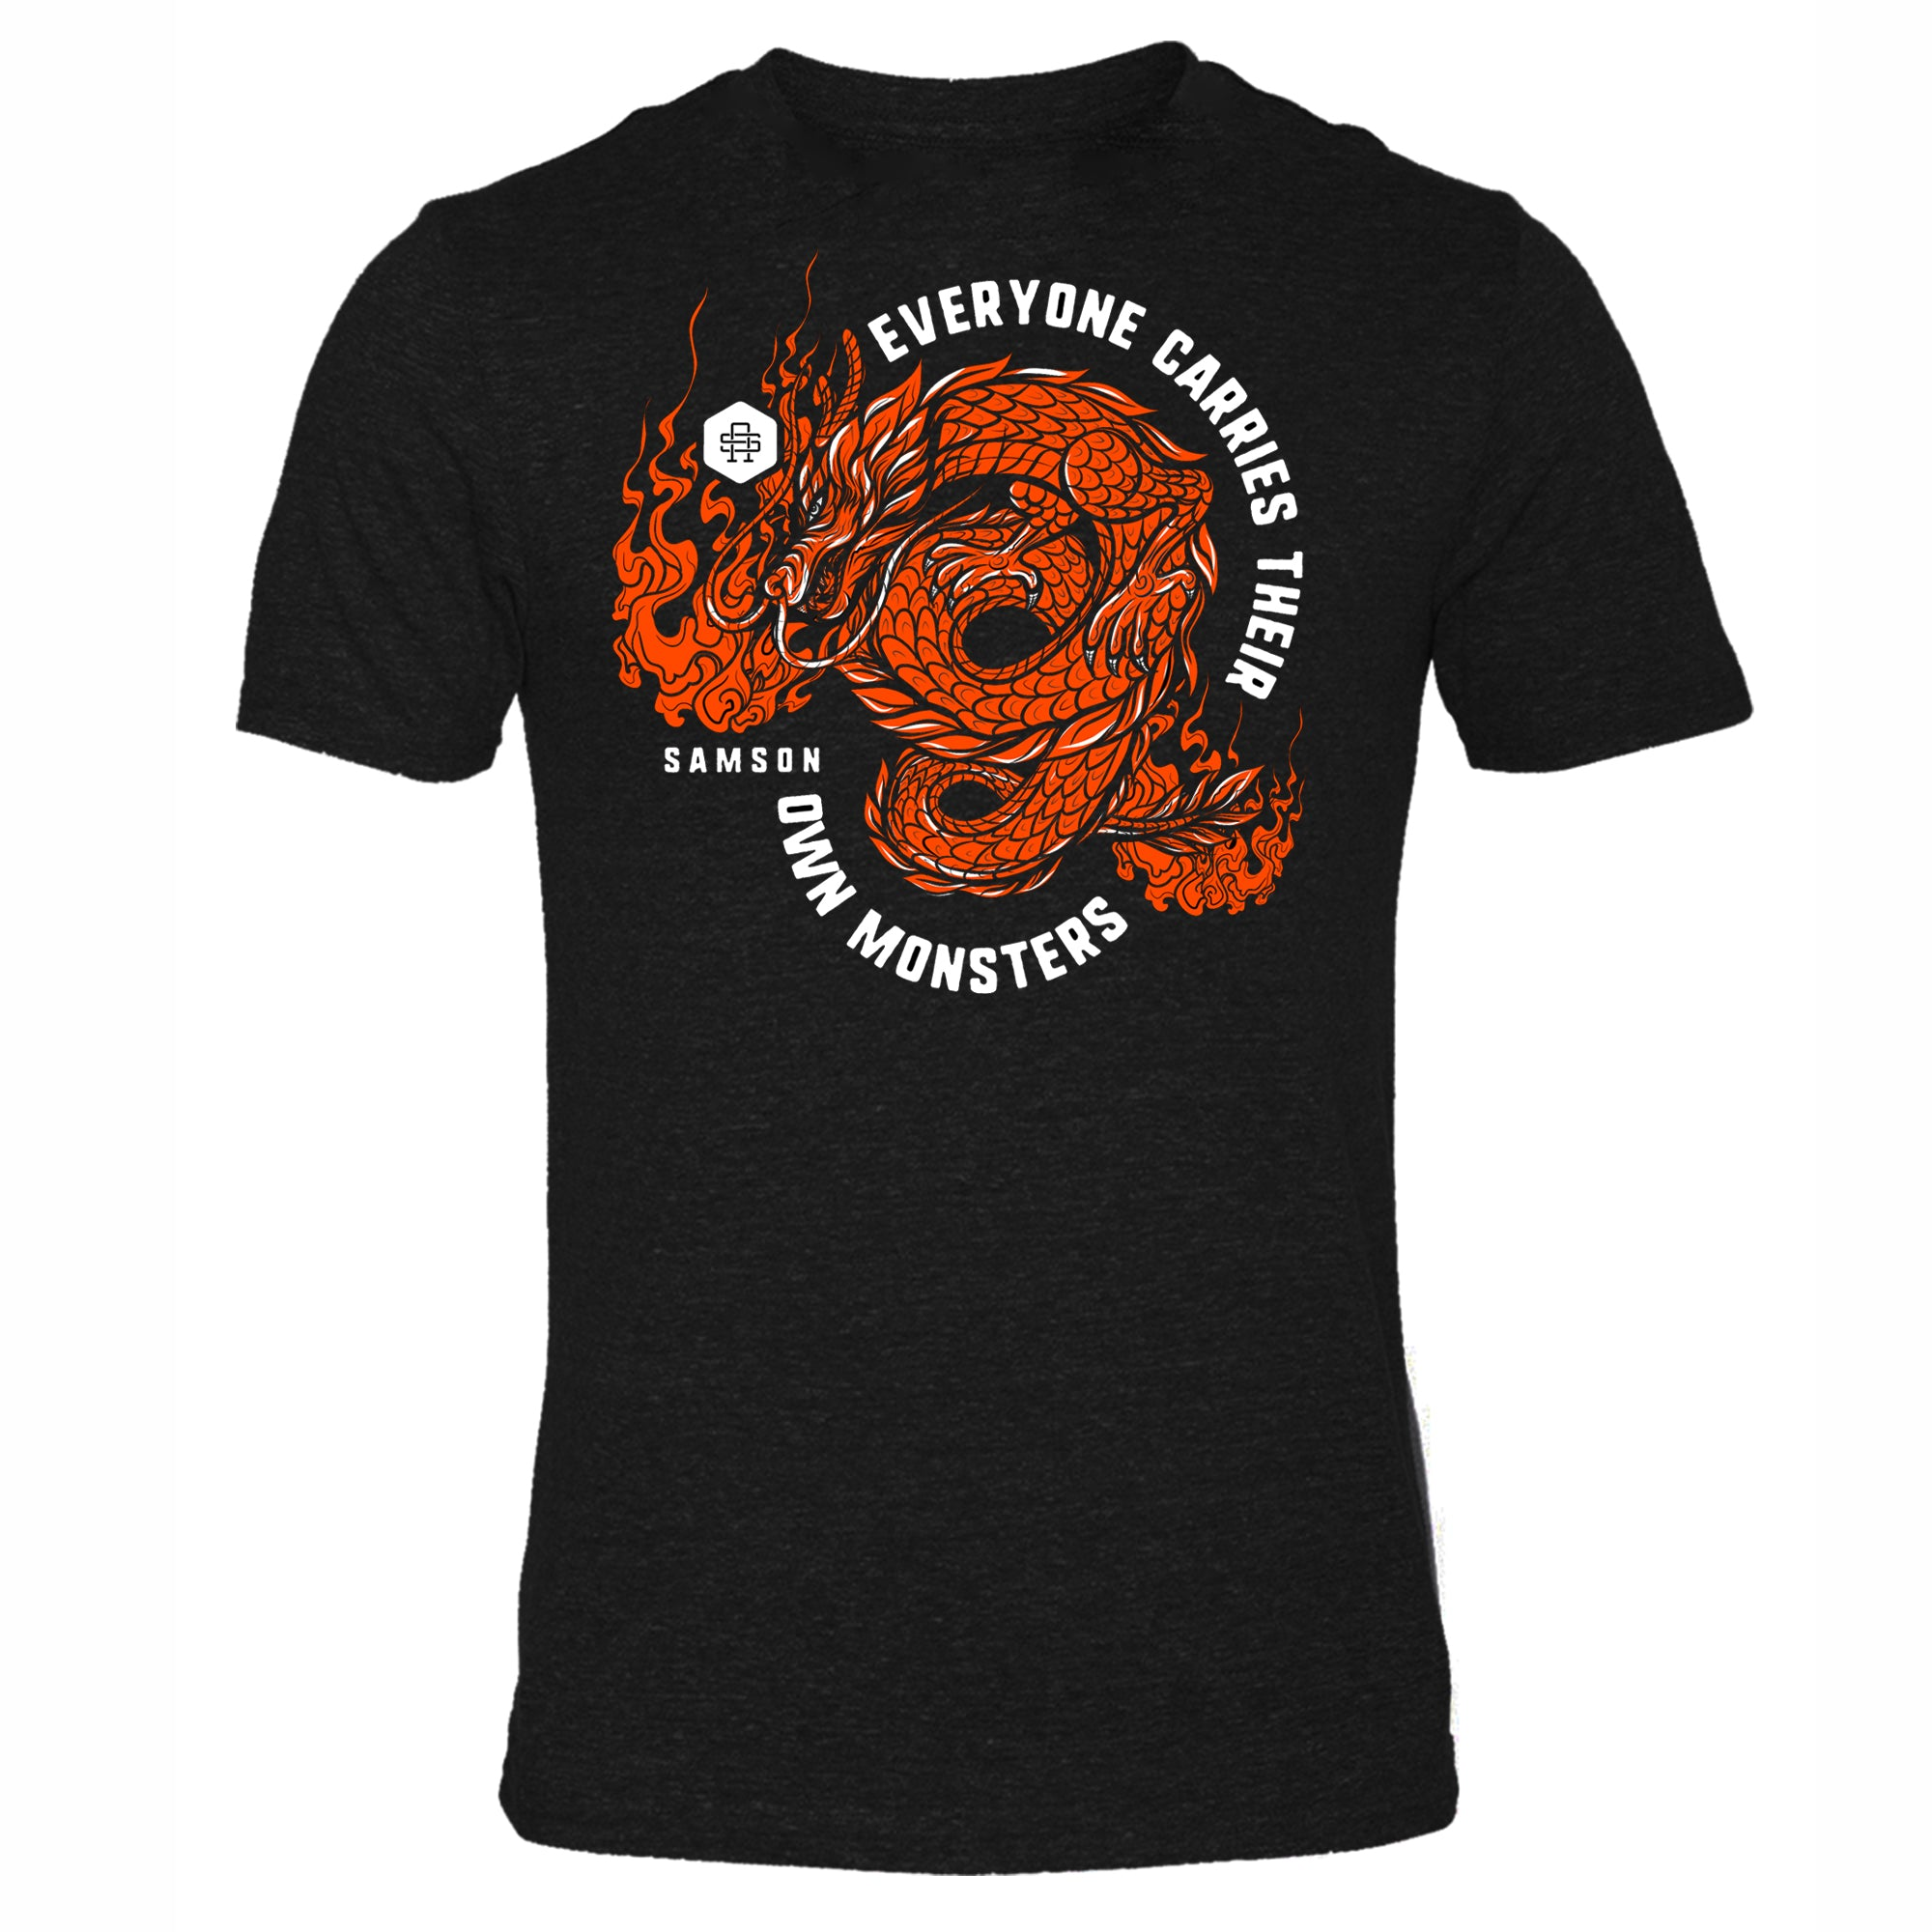 Everyone Carries Their Own Monsters - Gym T Shirt